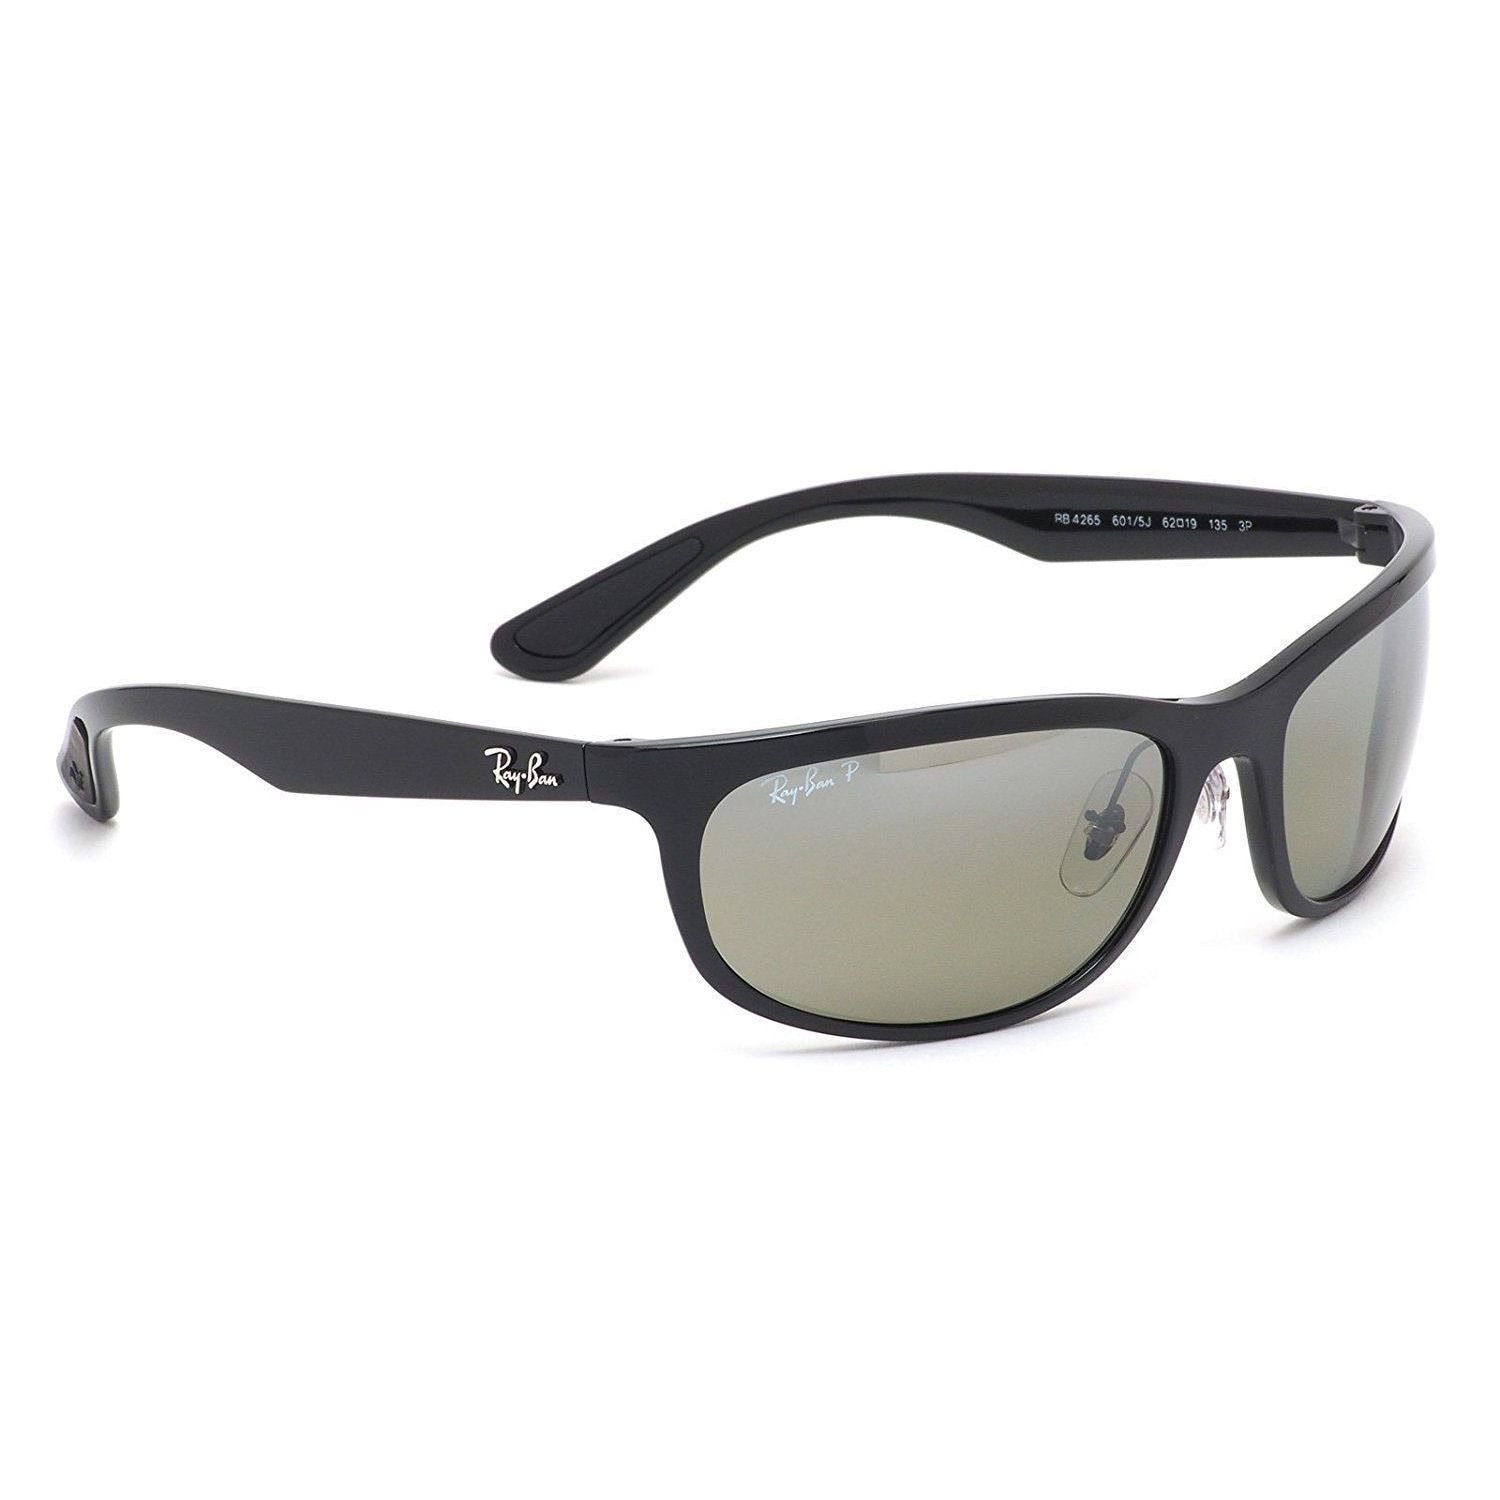 c7b6b91a47 Shop Ray-Ban RB4265 601 5J Men s Black Frame Polarized Silver Mirror  Chromance Lens Sunglasses - Free Shipping Today - Overstock - 15287362